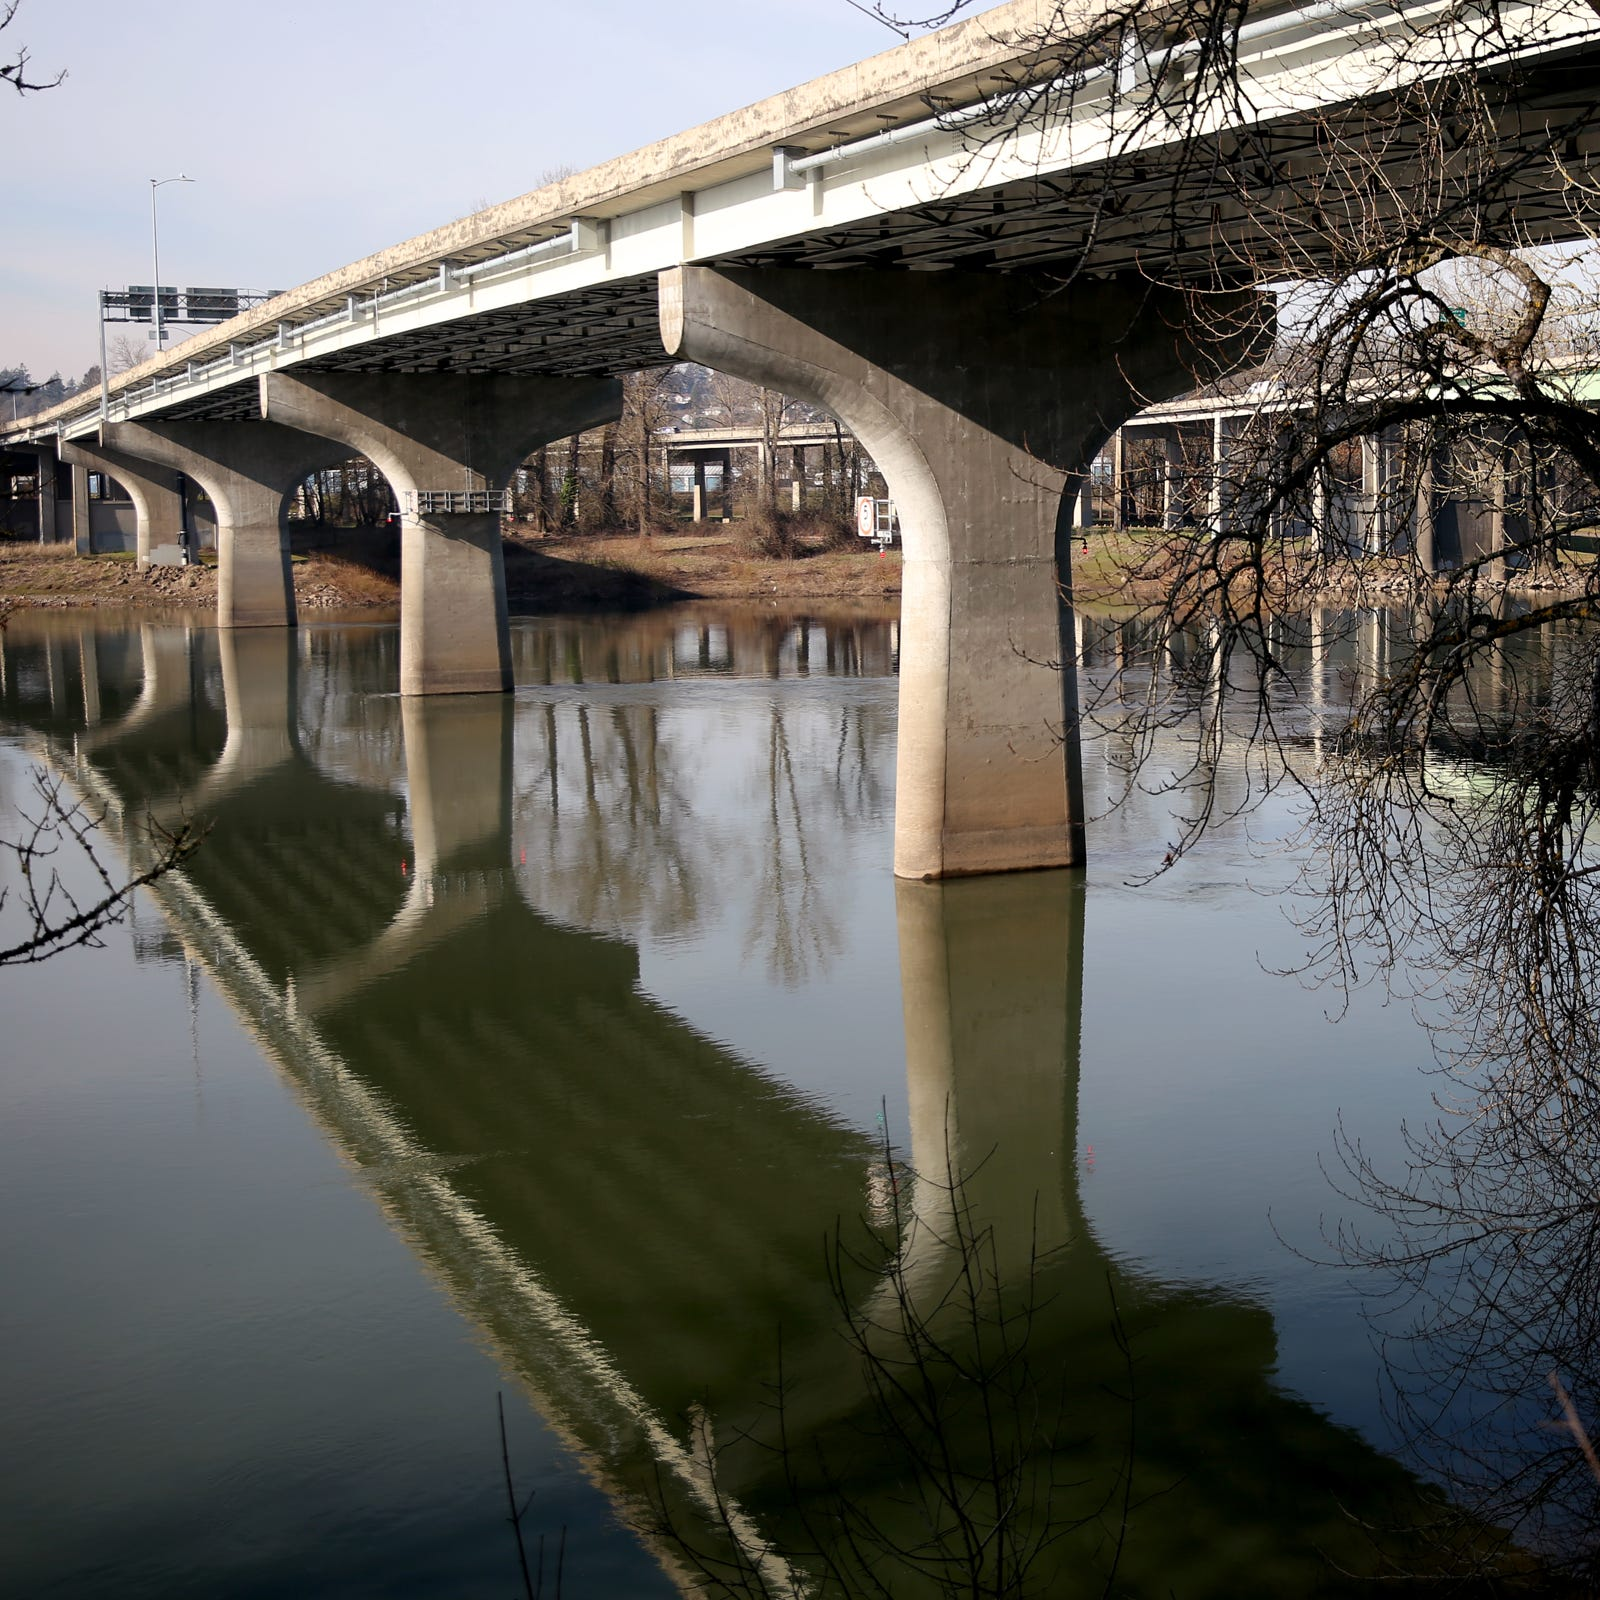 Salem Center Street Bridge seismic retrofit may cost $100 million